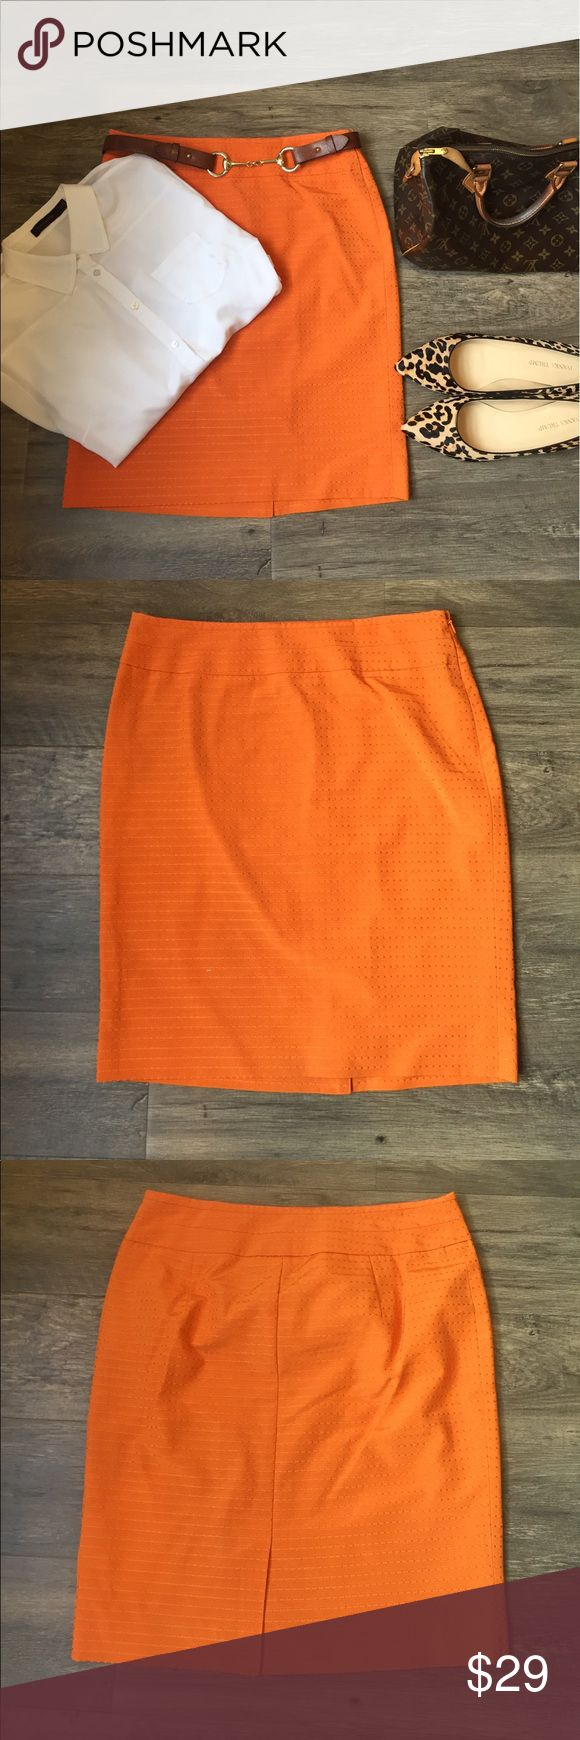 Never worn! Orange pencil skirt. Size 6. Such a sun color for work! Orange pencil skirt in size 6 from The Limited. Never worn! Fully lined, side zipper, and small slit in the back. The Limited Skirts Pencil